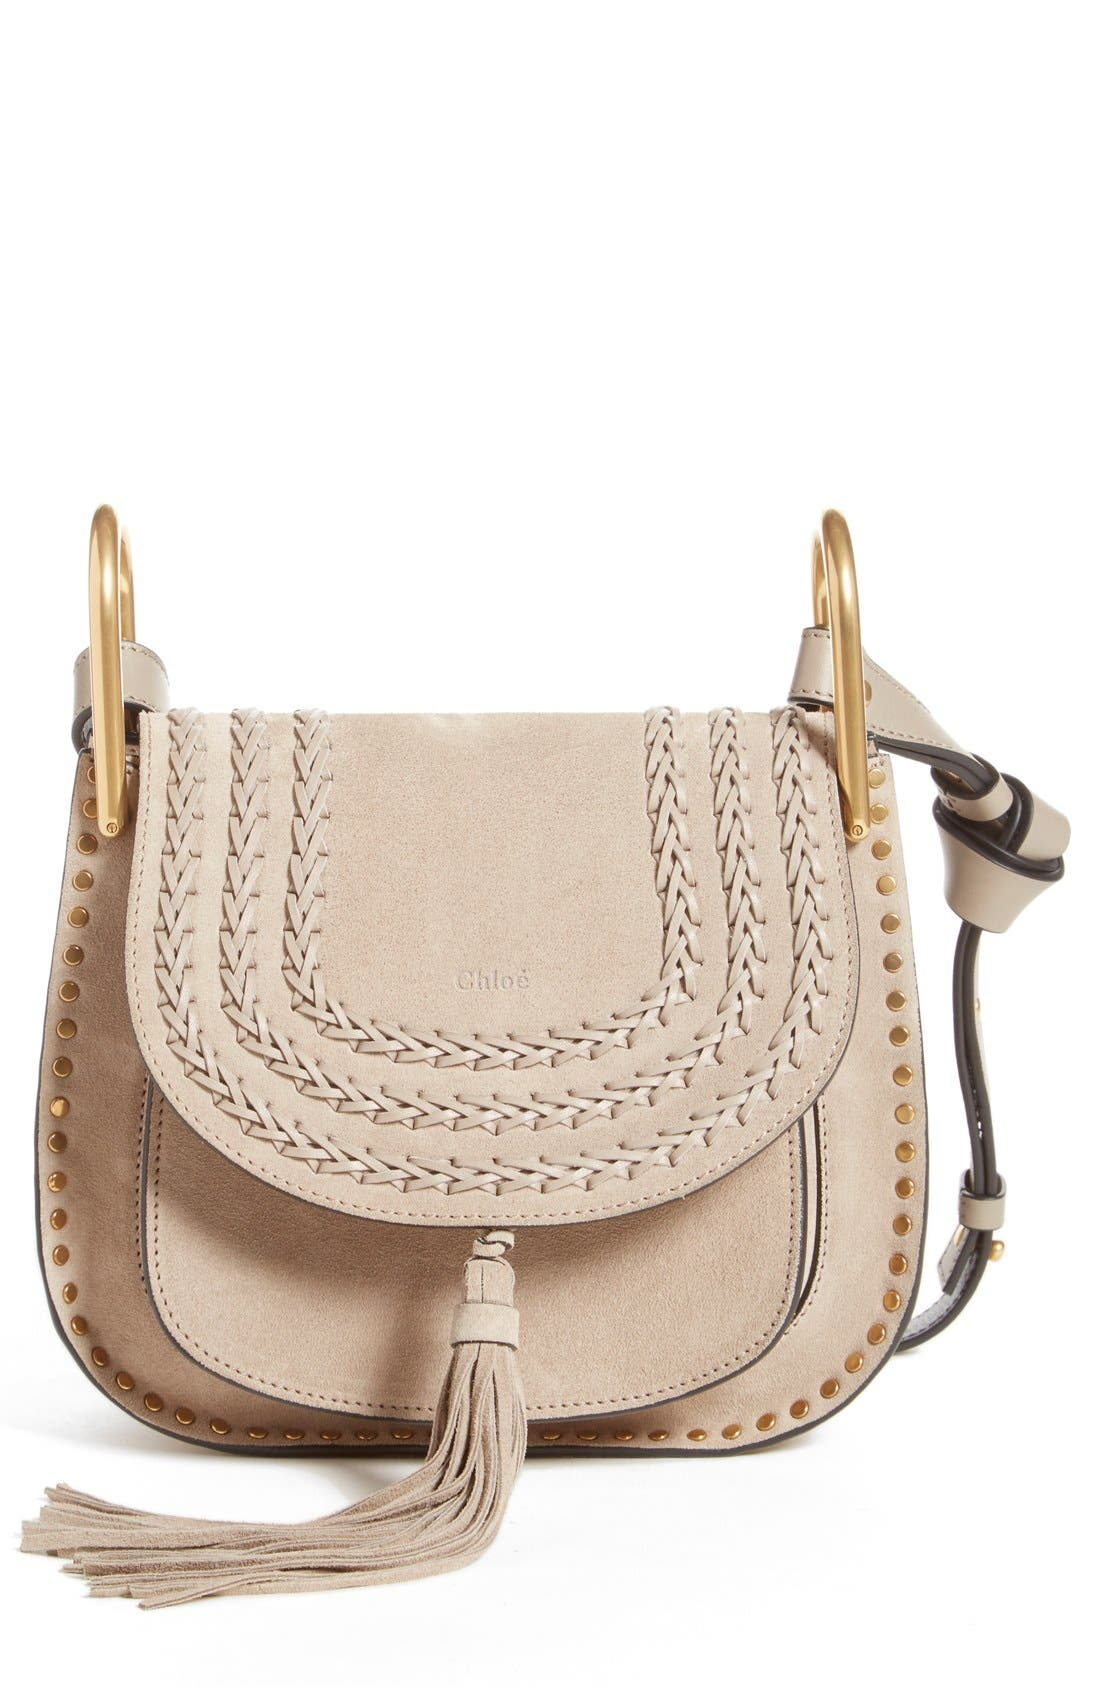 'Small Hudson' Shoulder Bag,                             Main thumbnail 1, color,                             Motty Grey